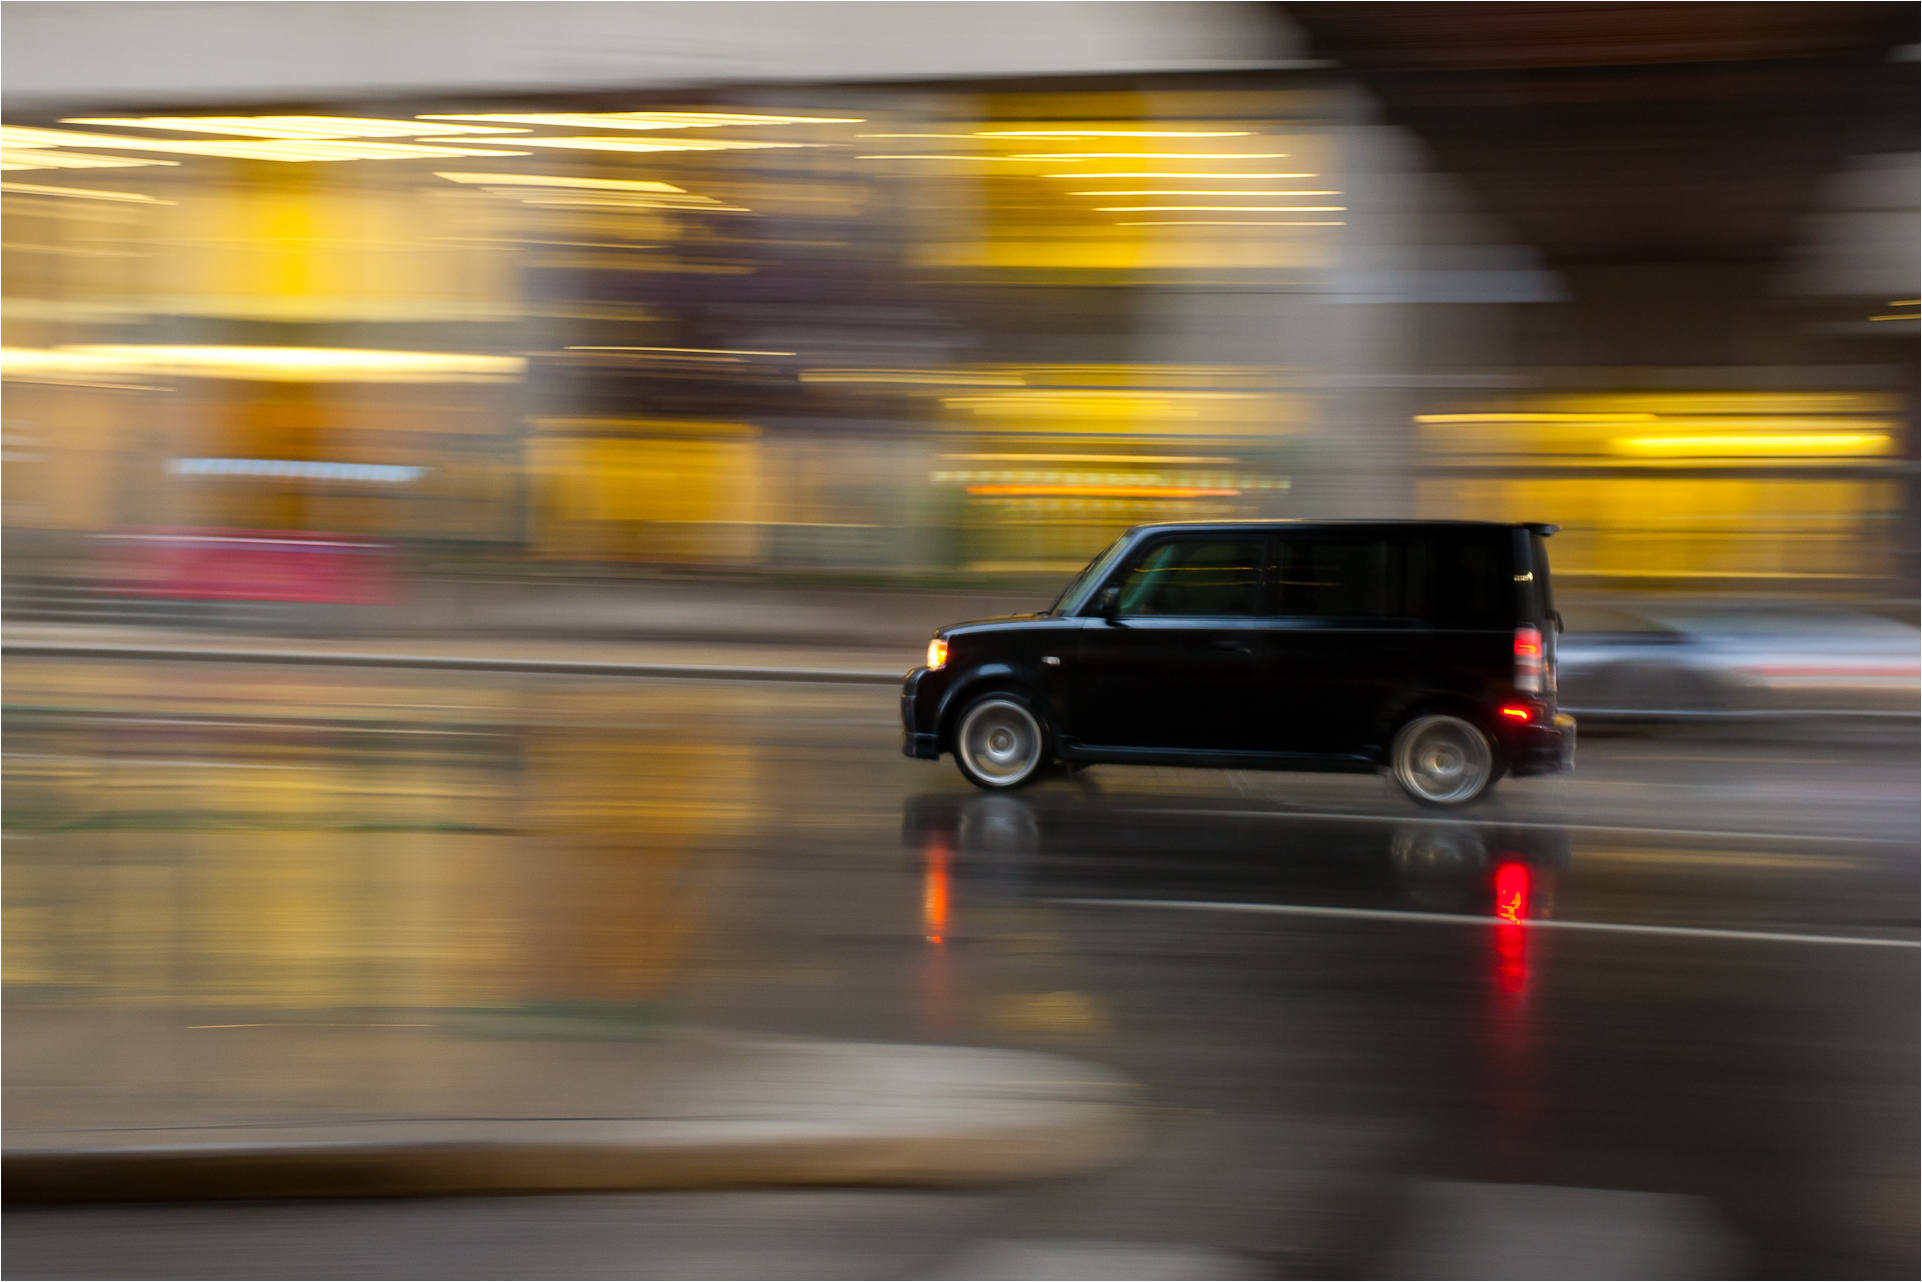 Panning Motion Blur Photography